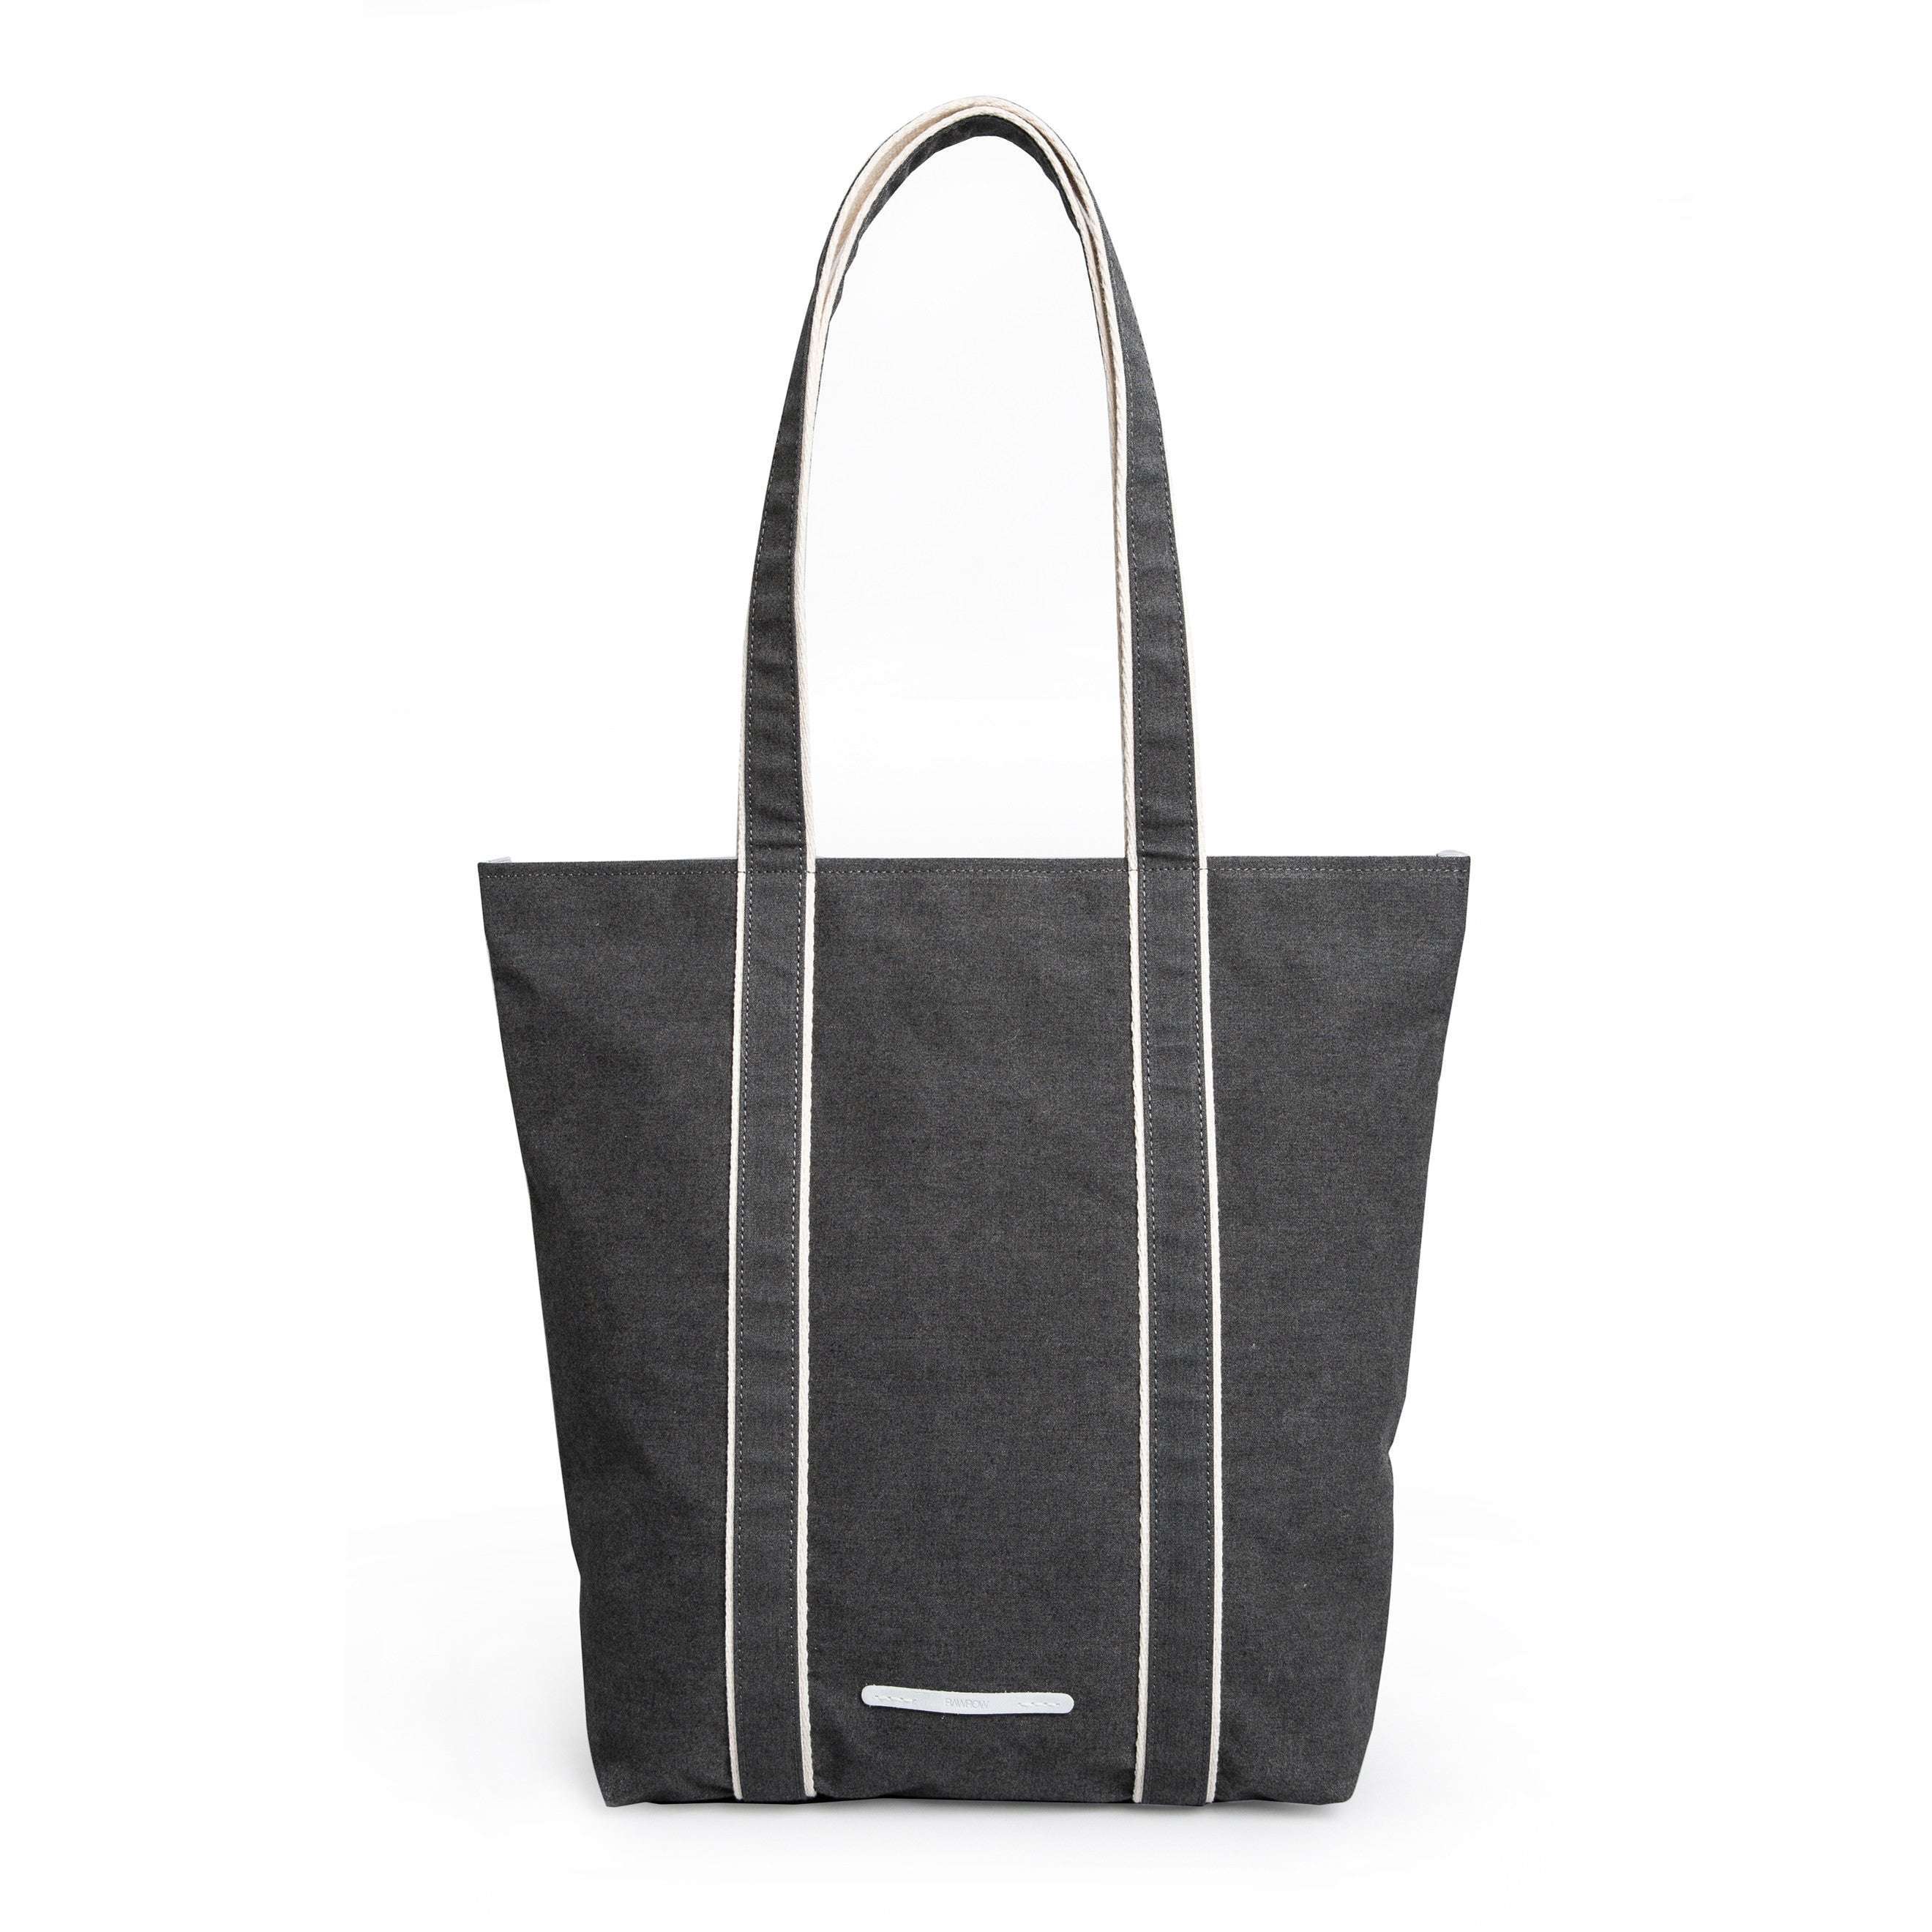 'Shoulder Tote 205' Raw Waxed Black